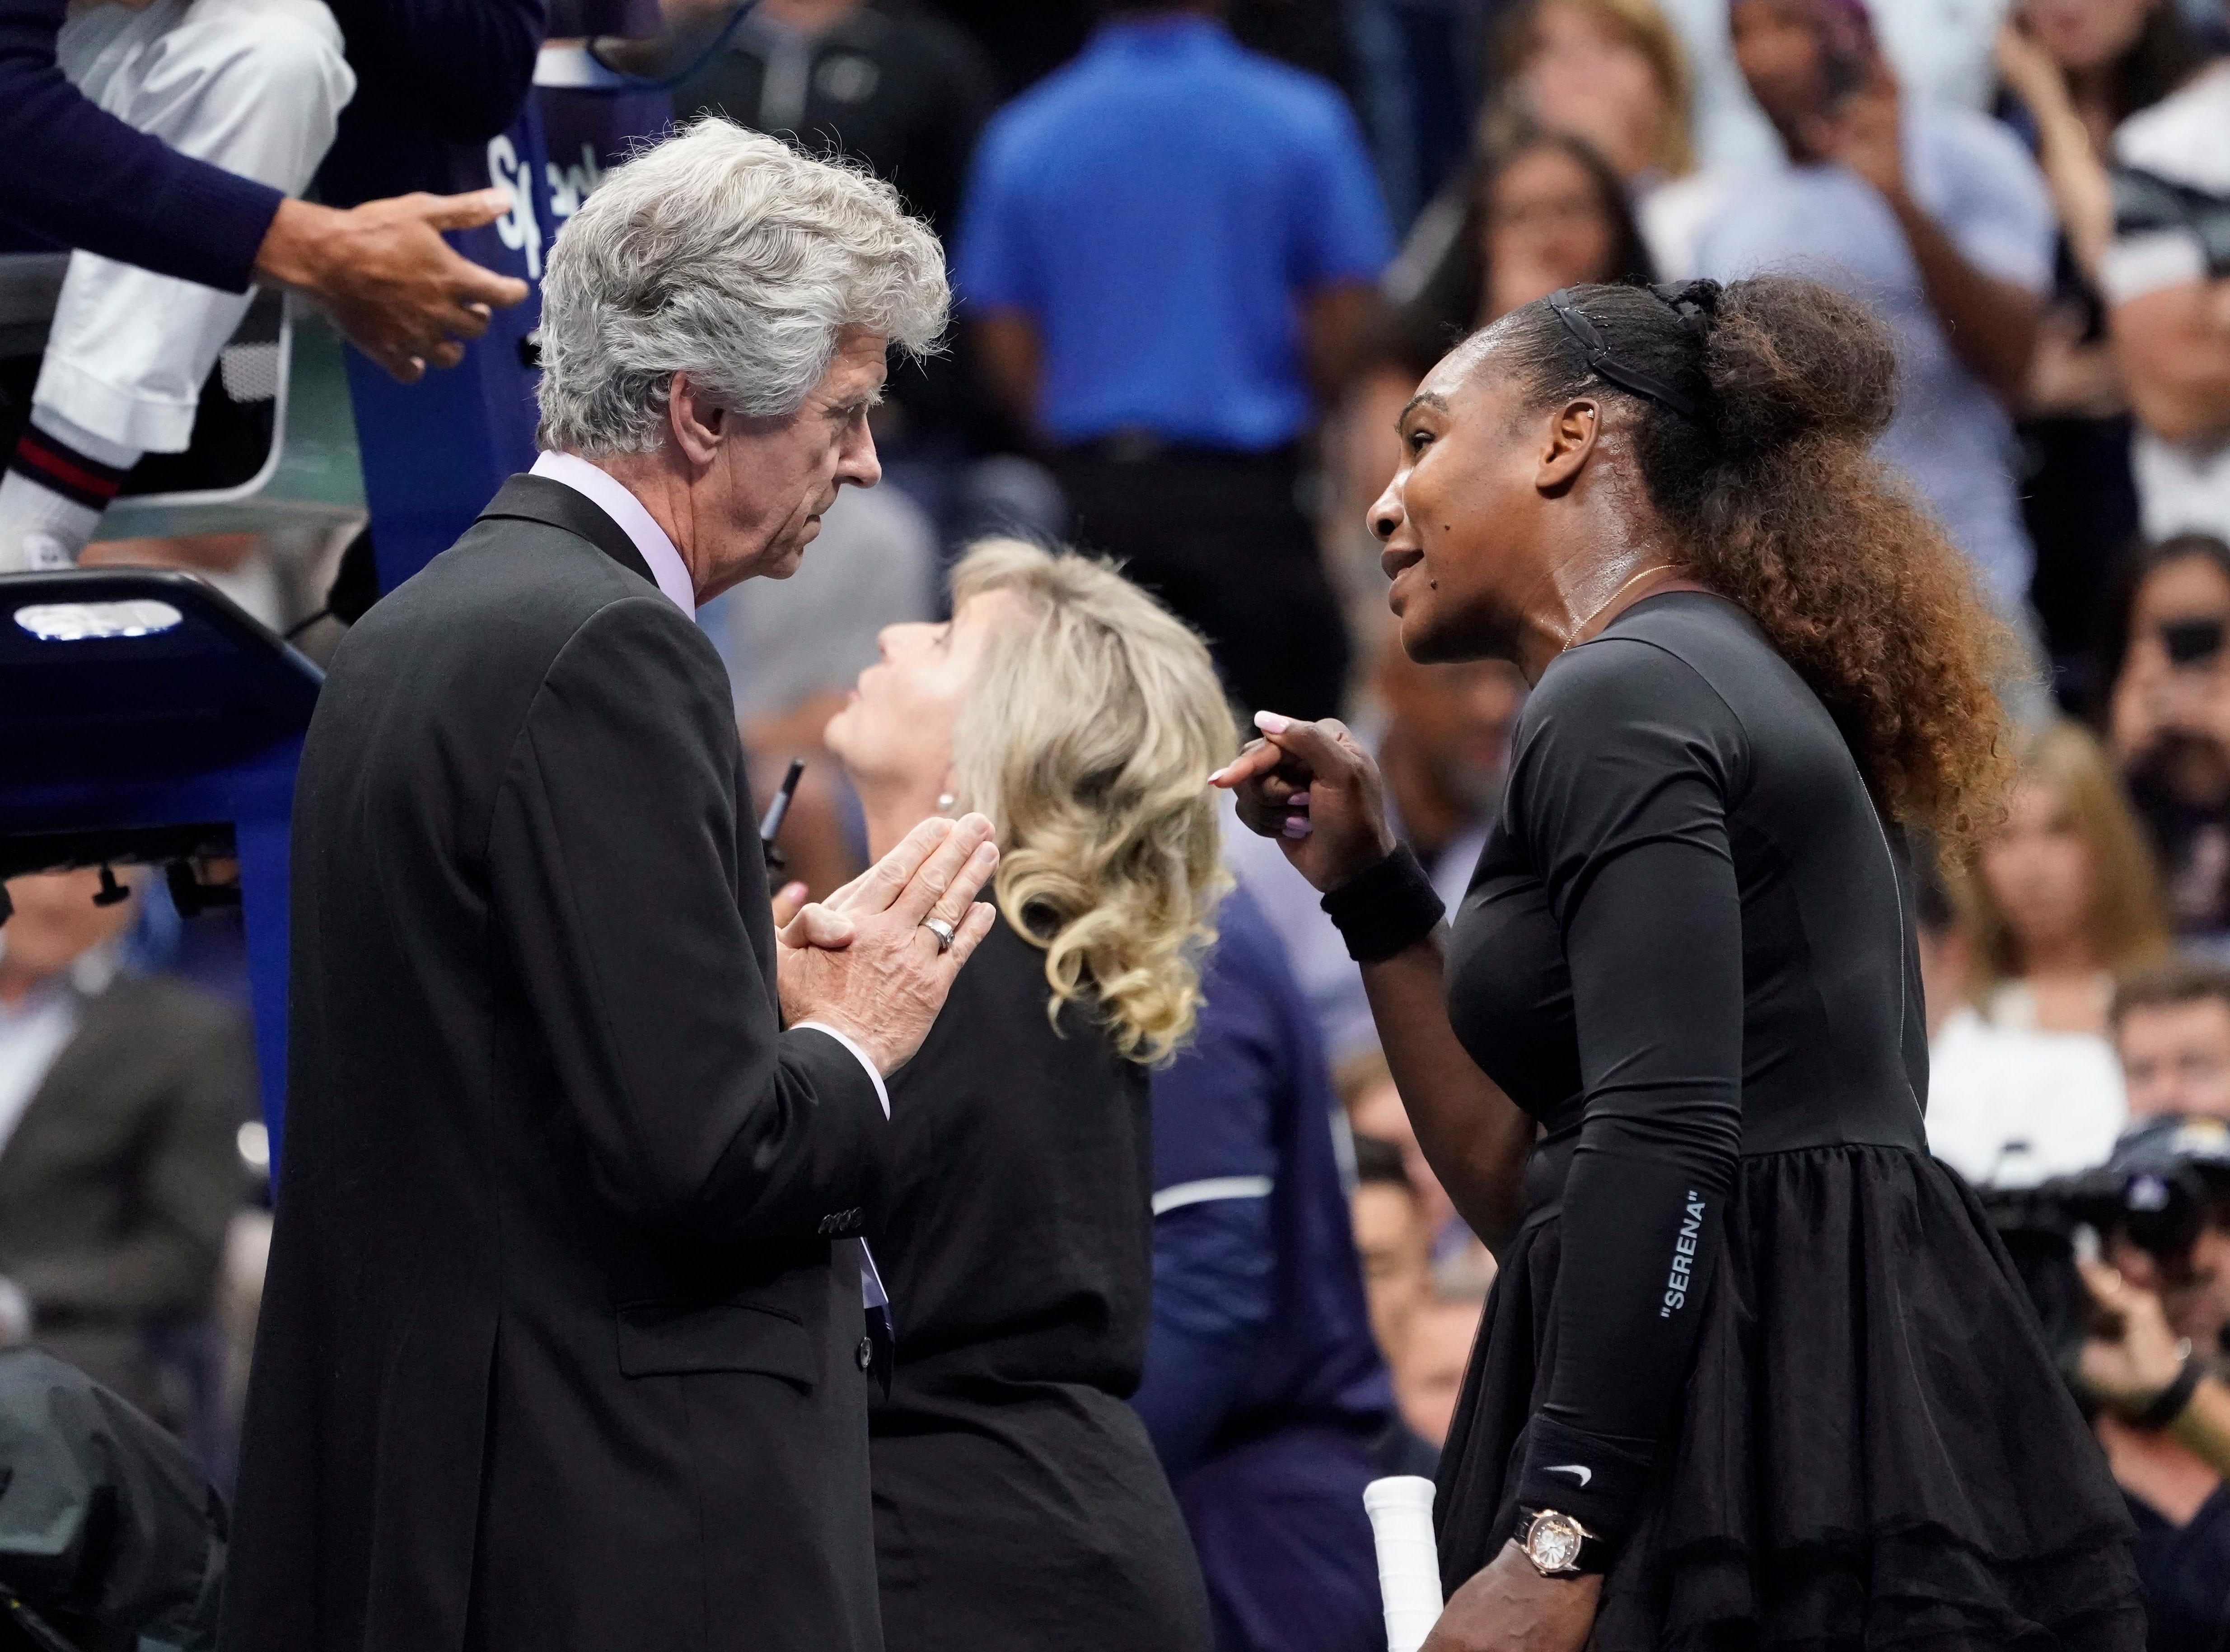 Serena Williams argues with tournament director Brian Earley after being assessed a game penalty. She was penalized for arguing with the chair umpire.